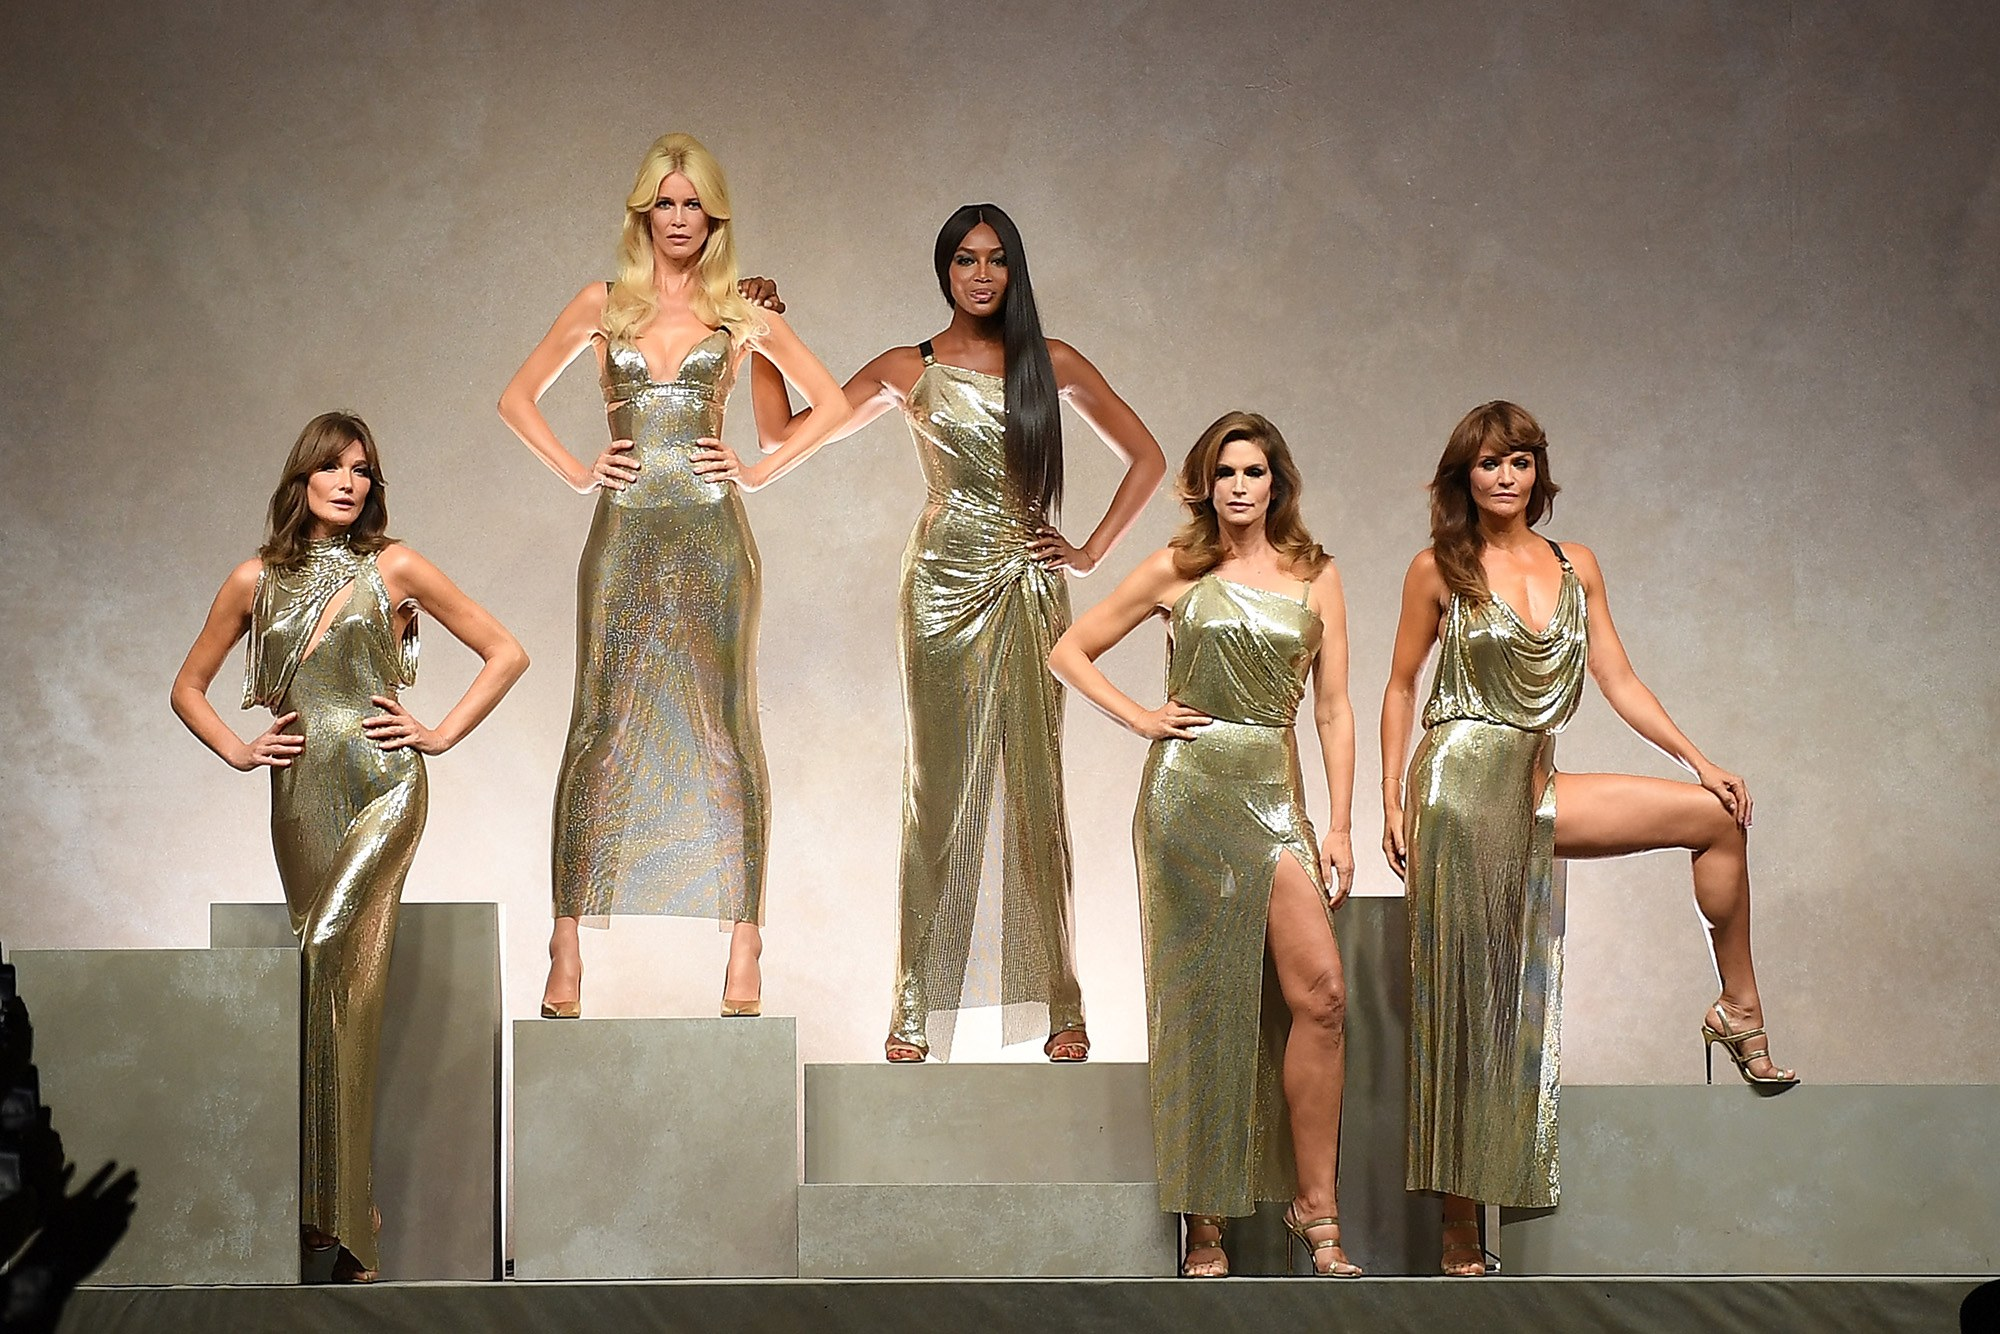 Carla Bruni, Claudia Schiffer, Naomi Campbell, Cindy Crawford and Helena Christensen. Image  via